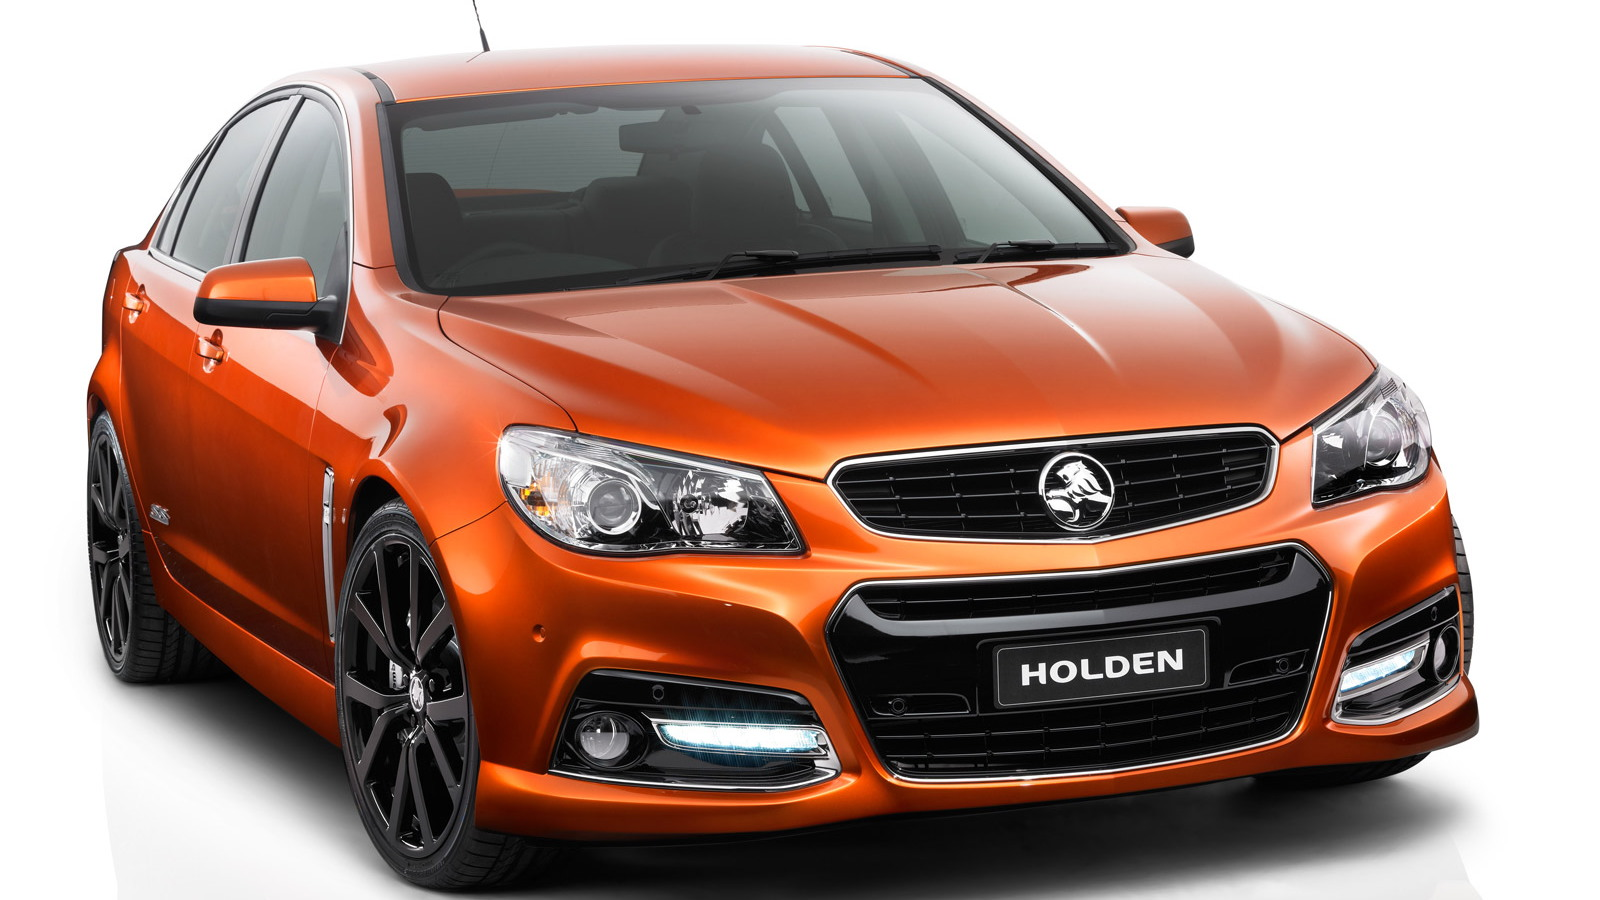 2013 Holden Commodore SS V